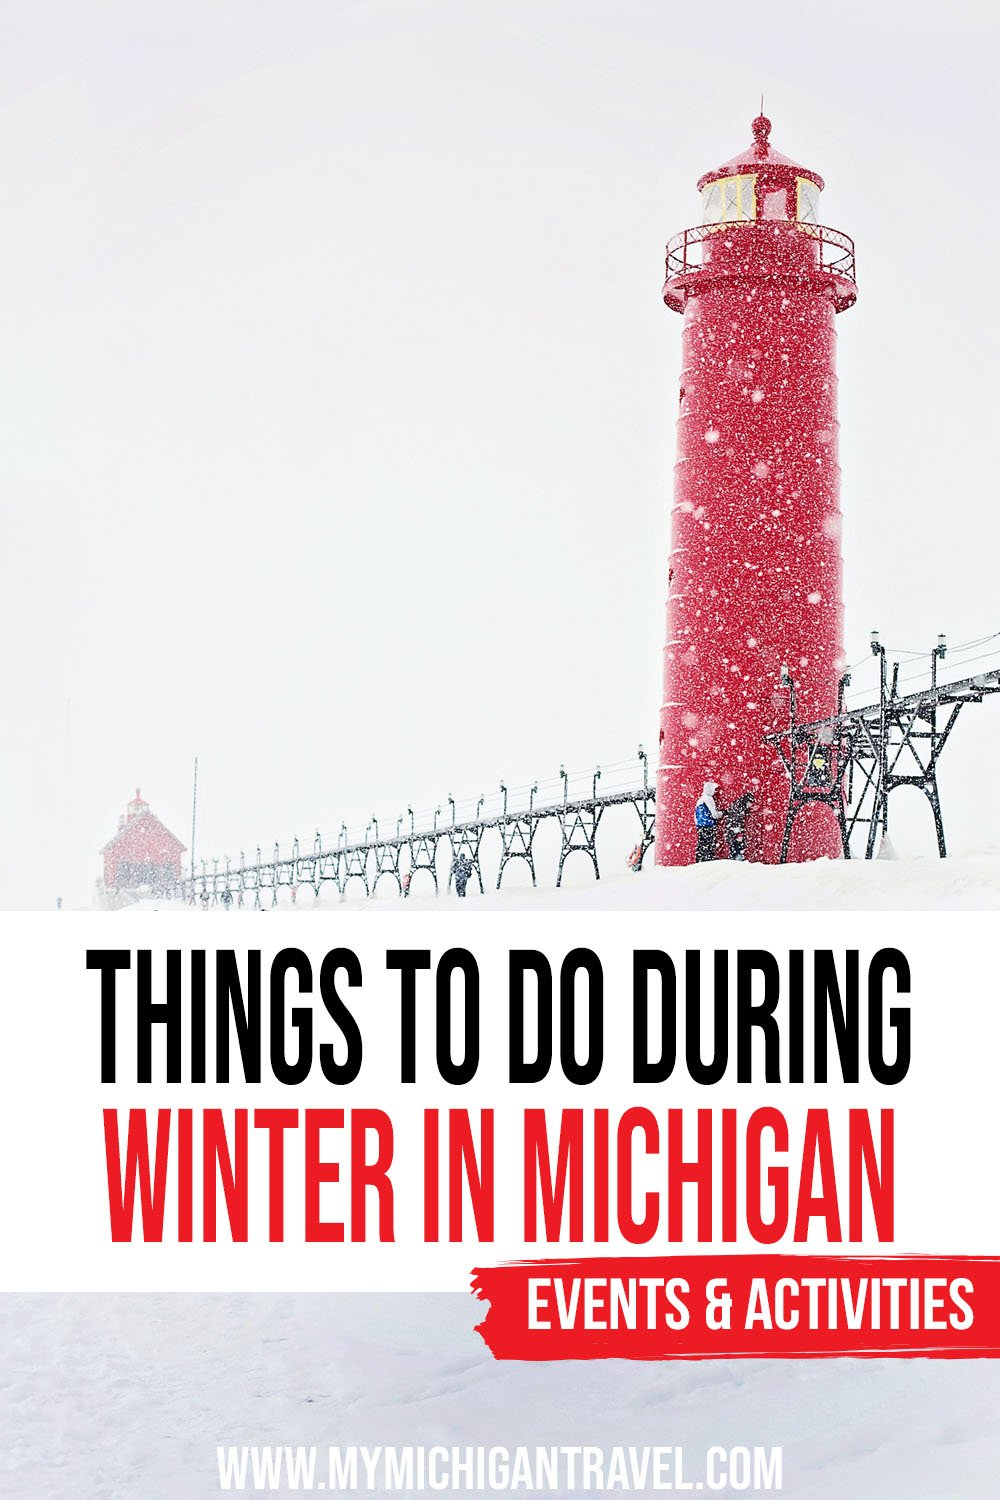 """Photo of a red lighthouse with snow swirling around it and text overlay reading """"Things to do during winter in Michigan - events & activities"""""""